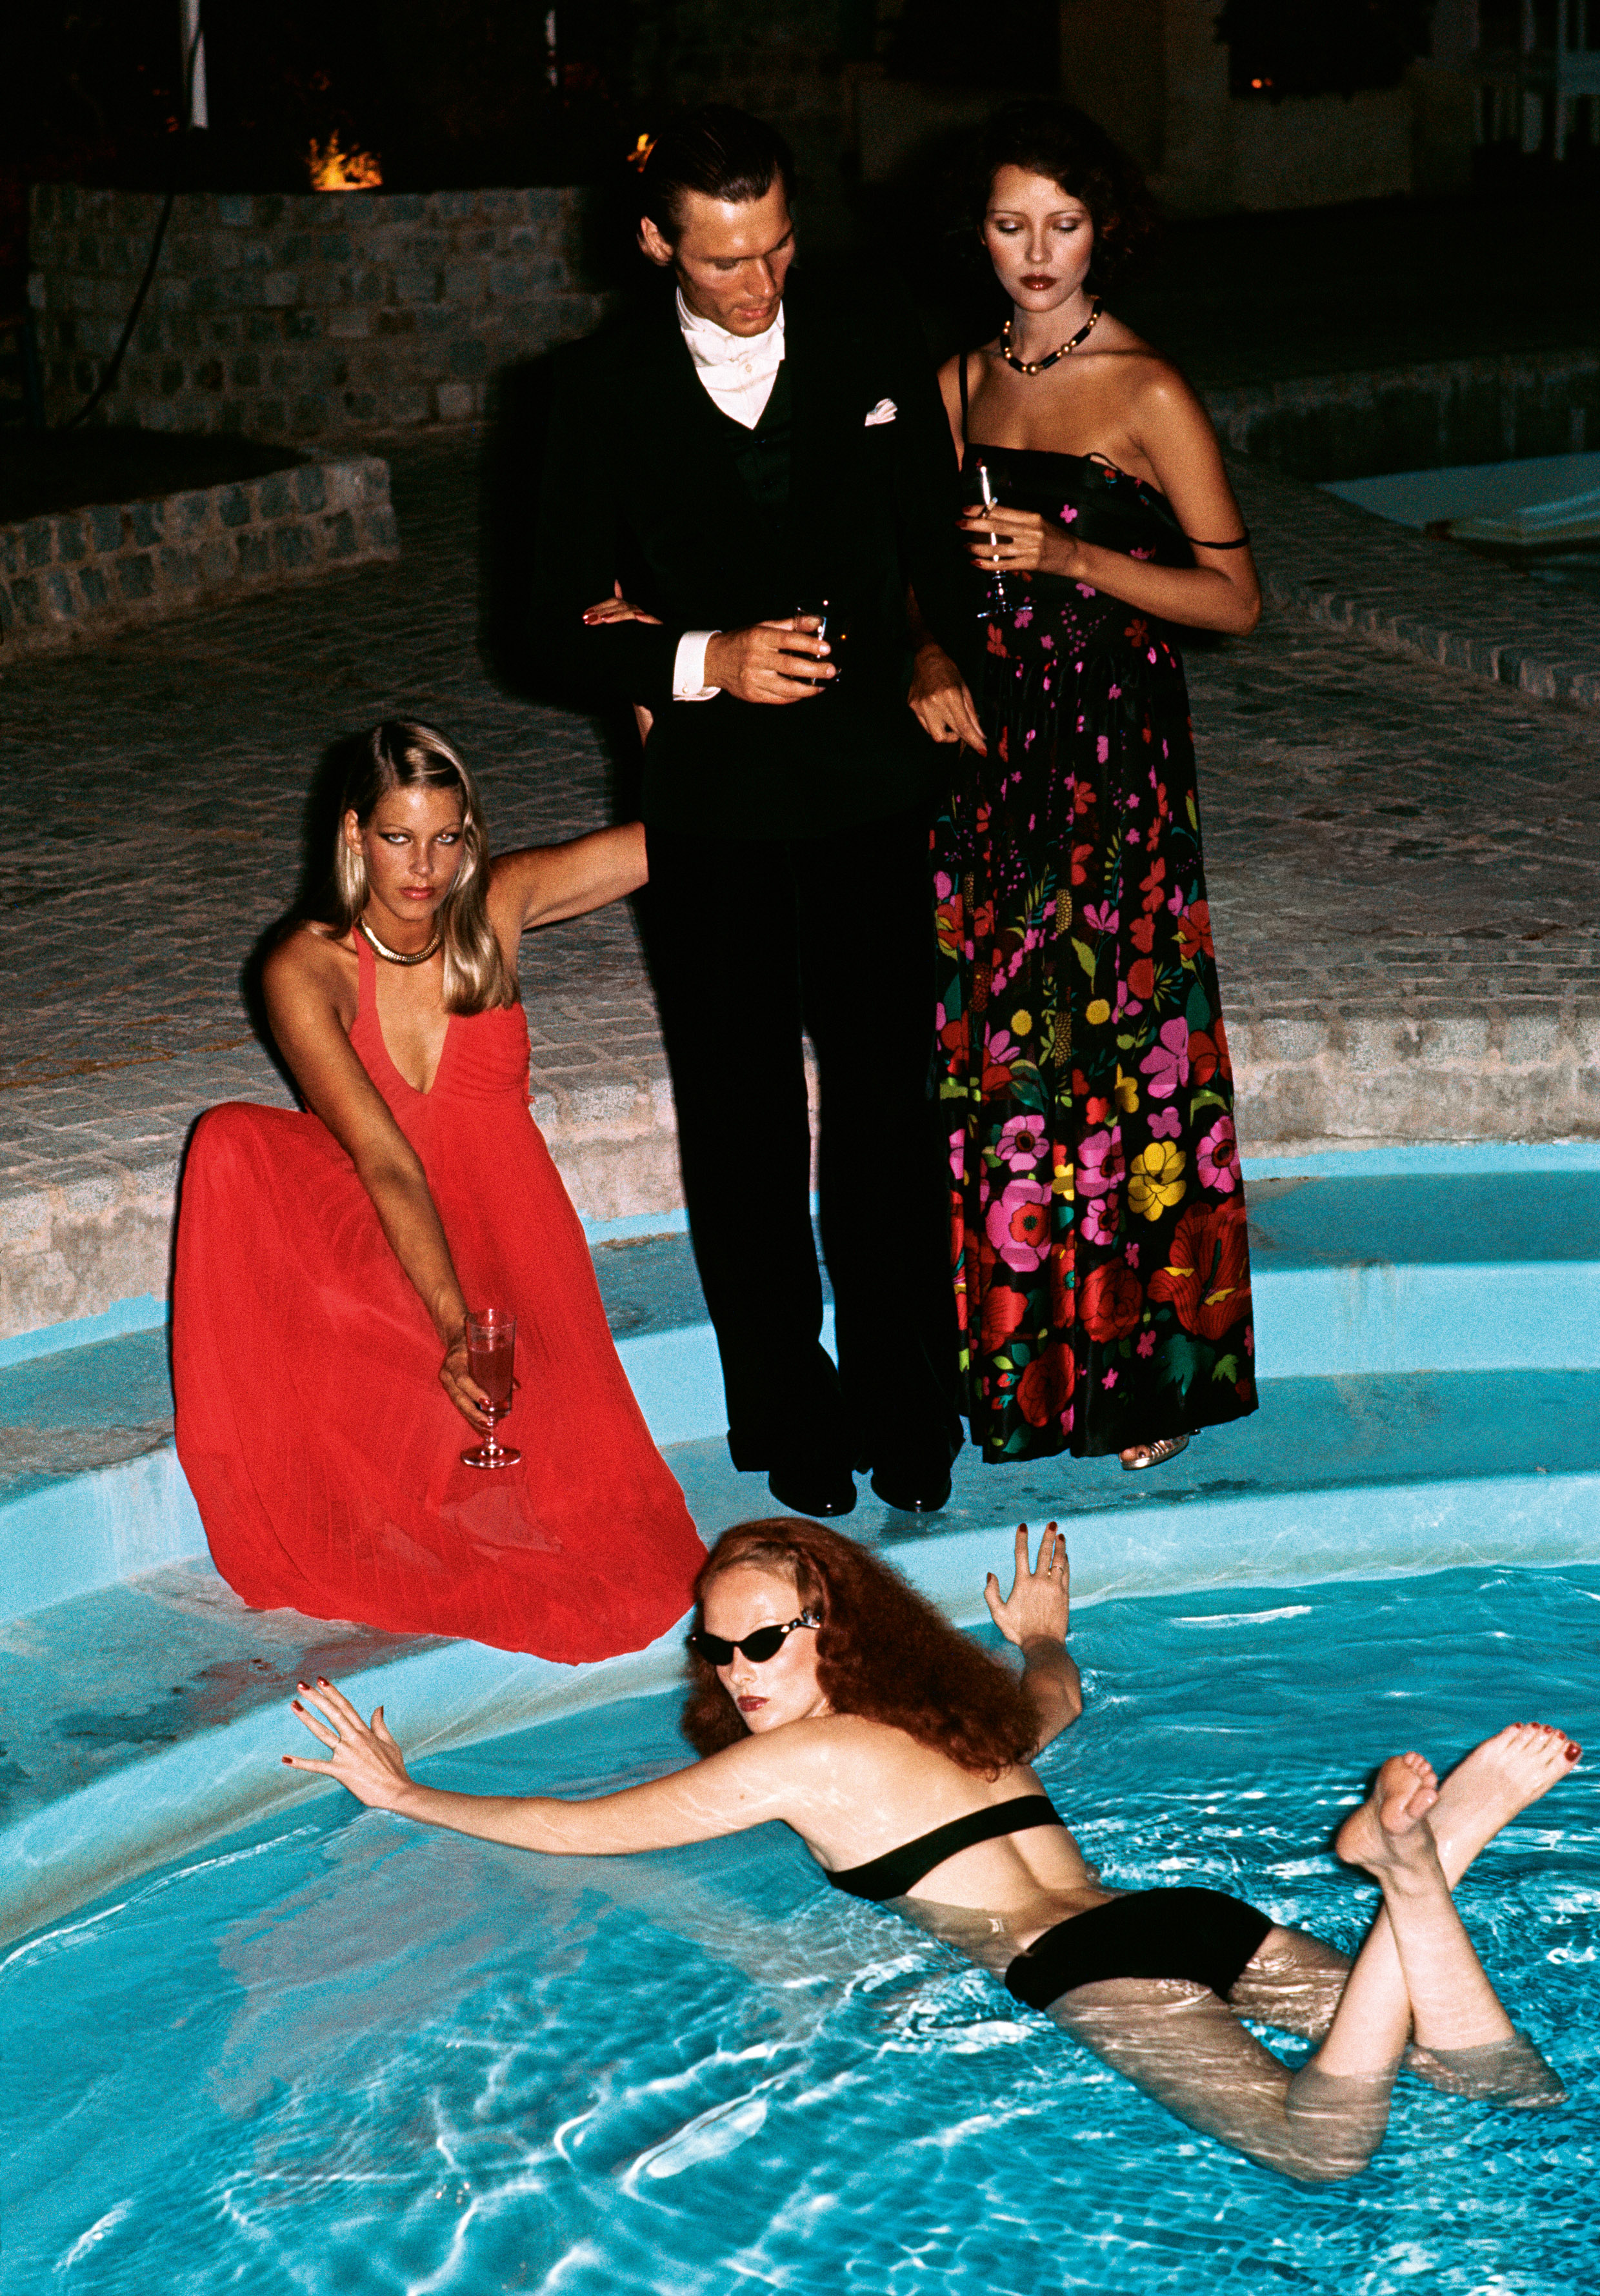 Limelight Nights by Helmut Newton, 1973 ©The Condé Nast Publications Ltd